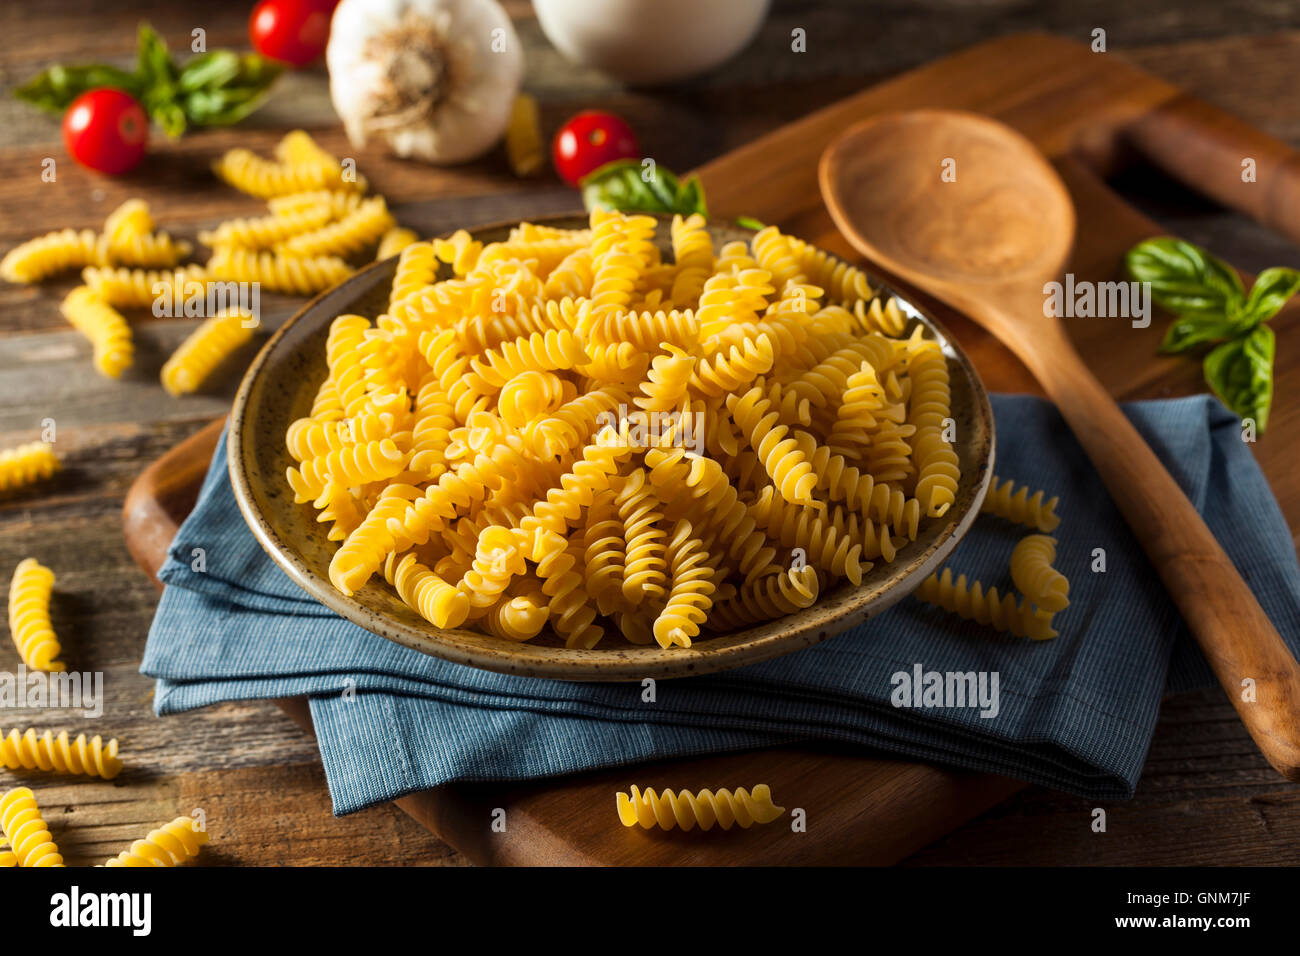 Raw Dry Organic Fusilli Pasta Ready for Cooking - Stock Image